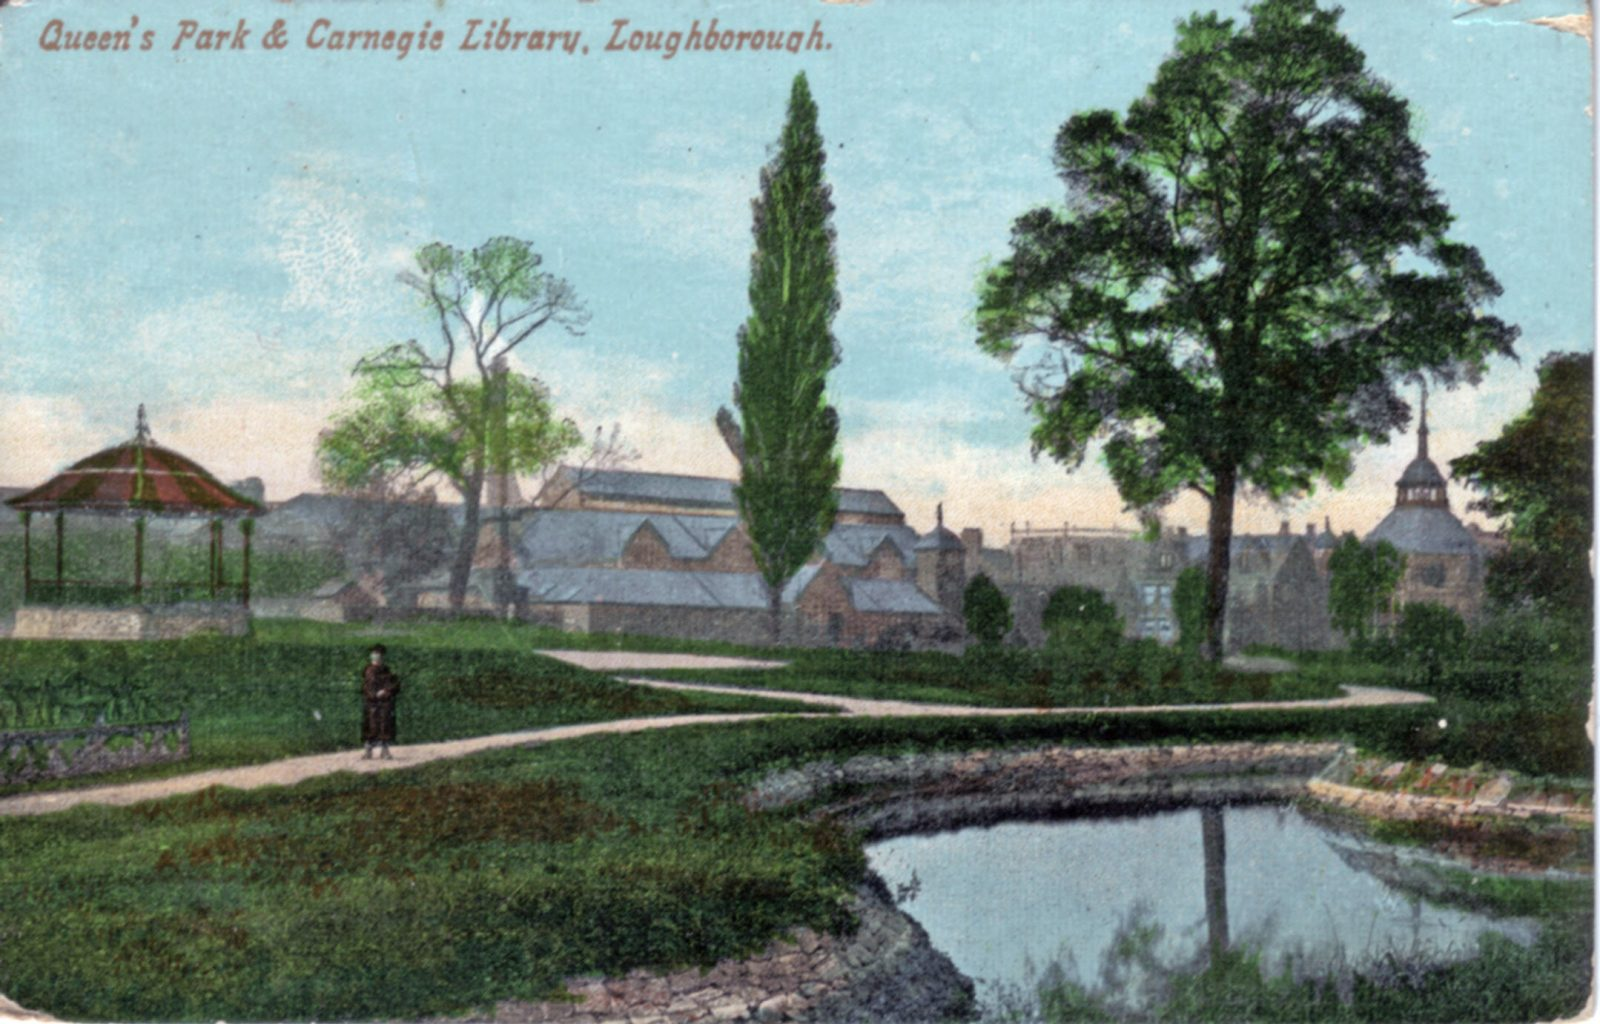 Queens Park, Loughborough. 1901-1920: Looking across park to Carnegie Library. Bandstand in middle ground. (File:1139)